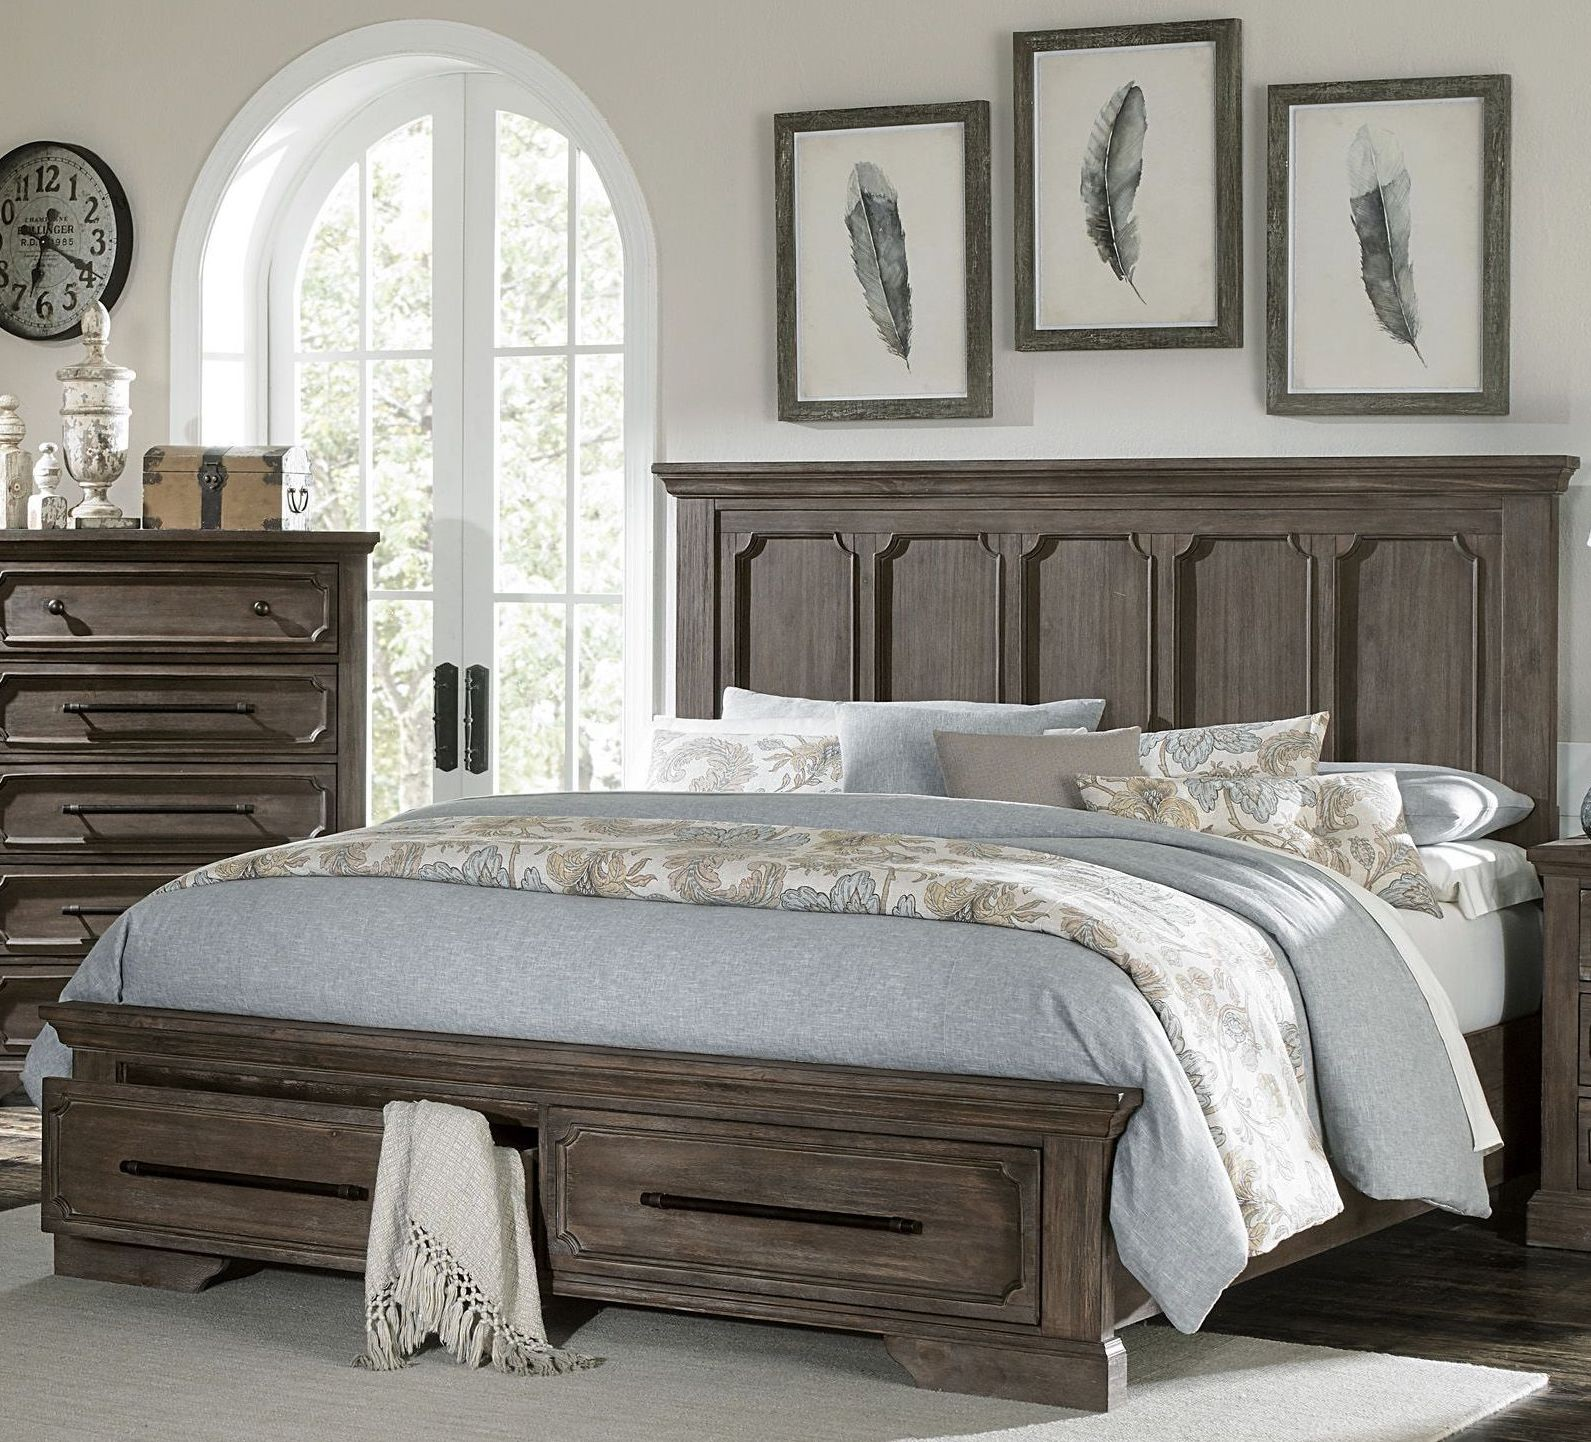 Unique Bedroom Sets: Toulon Unique Rustic Storage Bedroom Set